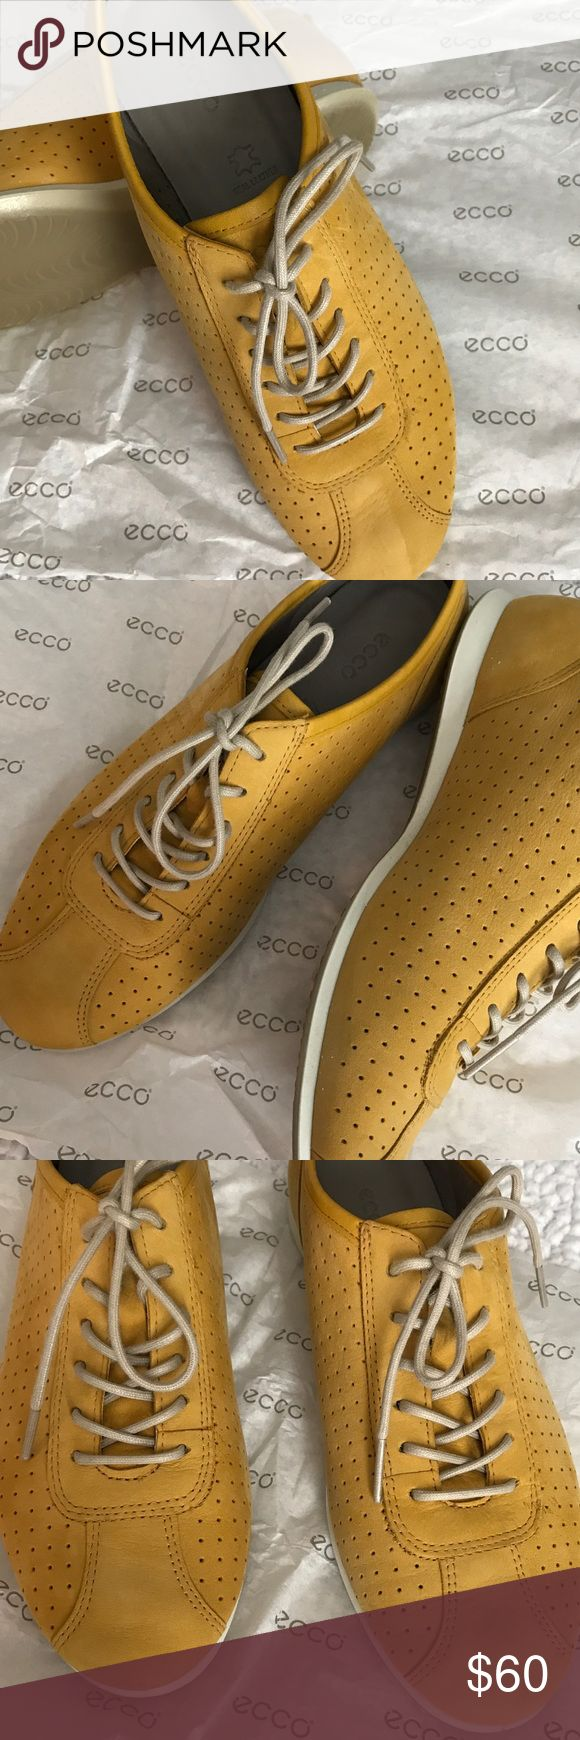 🌼Ecco Touch Sneaker🌼 Ecco Touch Sneaker in Saffron 🌼 Nubuck suede, beautiful saffron 🌼🌼 Pic #4 shows slight wear from driving 🚗. EUC Size 36 (U.S. size 5-5.5) ❗️NOTE: Pic #7 indicates European size, however; this is different from PM European size 36. I normally wear a size 6.5 and Ecco size 36 fits comfortably. Ecco Shoes Sneakers